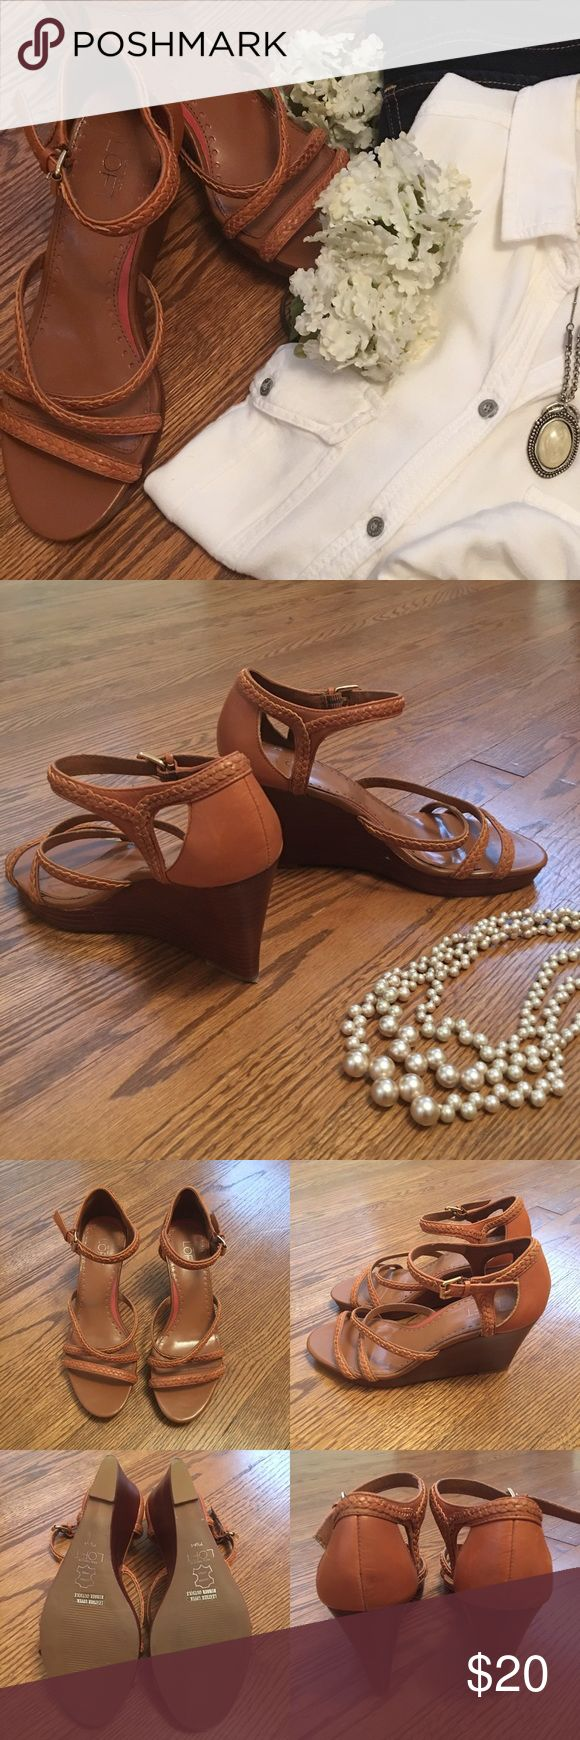 Anne Taylor Loft wedge sandals Next to new....this great pair of wedge sandals will be the perfect addition to your spring wardrobe. Pair them with dresses, jeans....so many options! LOFT Shoes Wedges